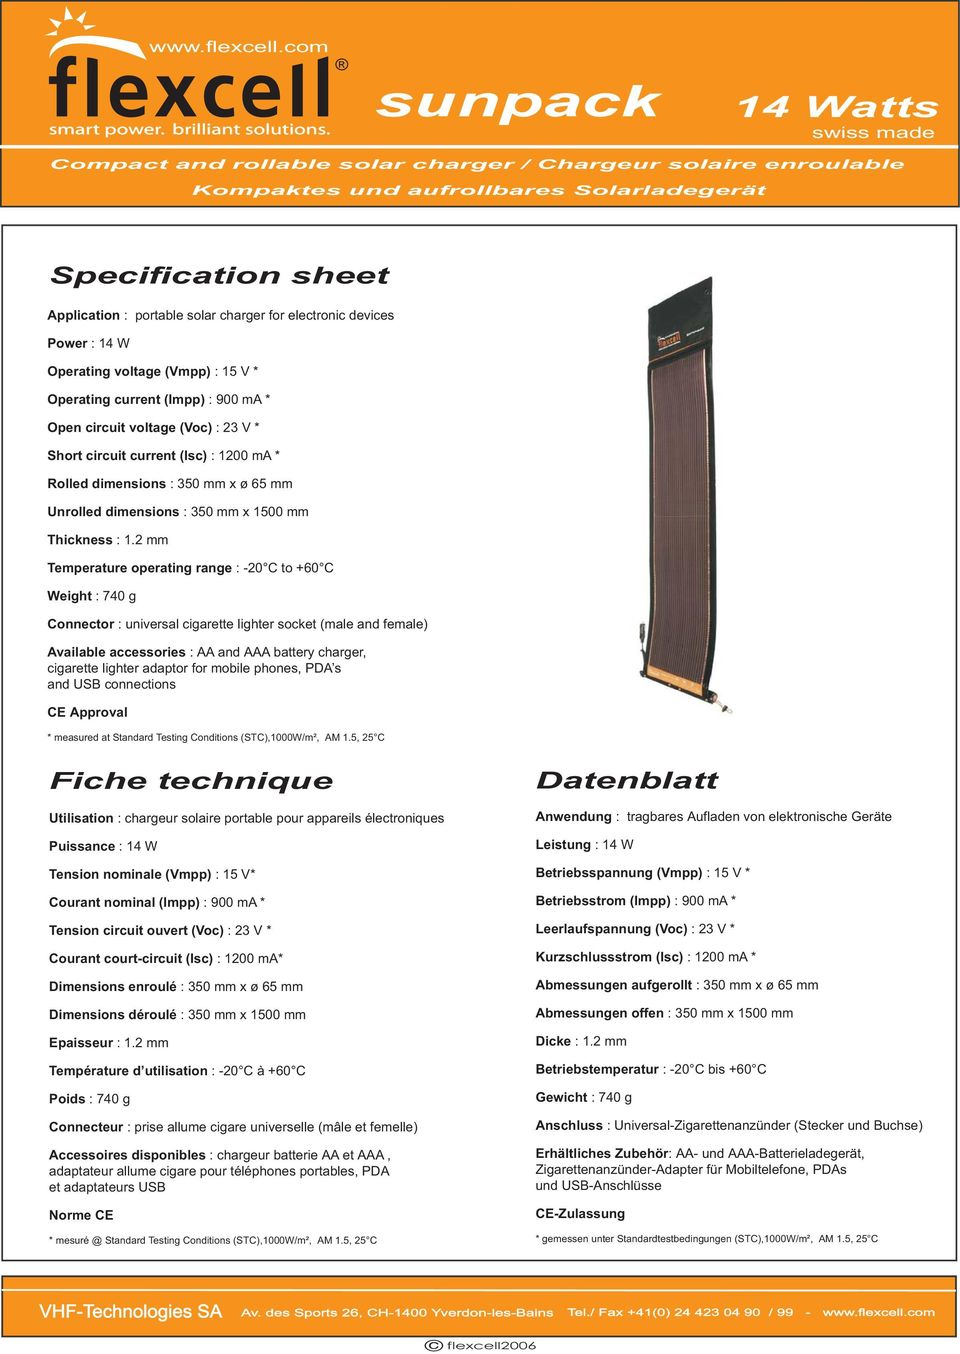 Unrolled dimensions : 350 mm x 1500 mm Thickness : 1.